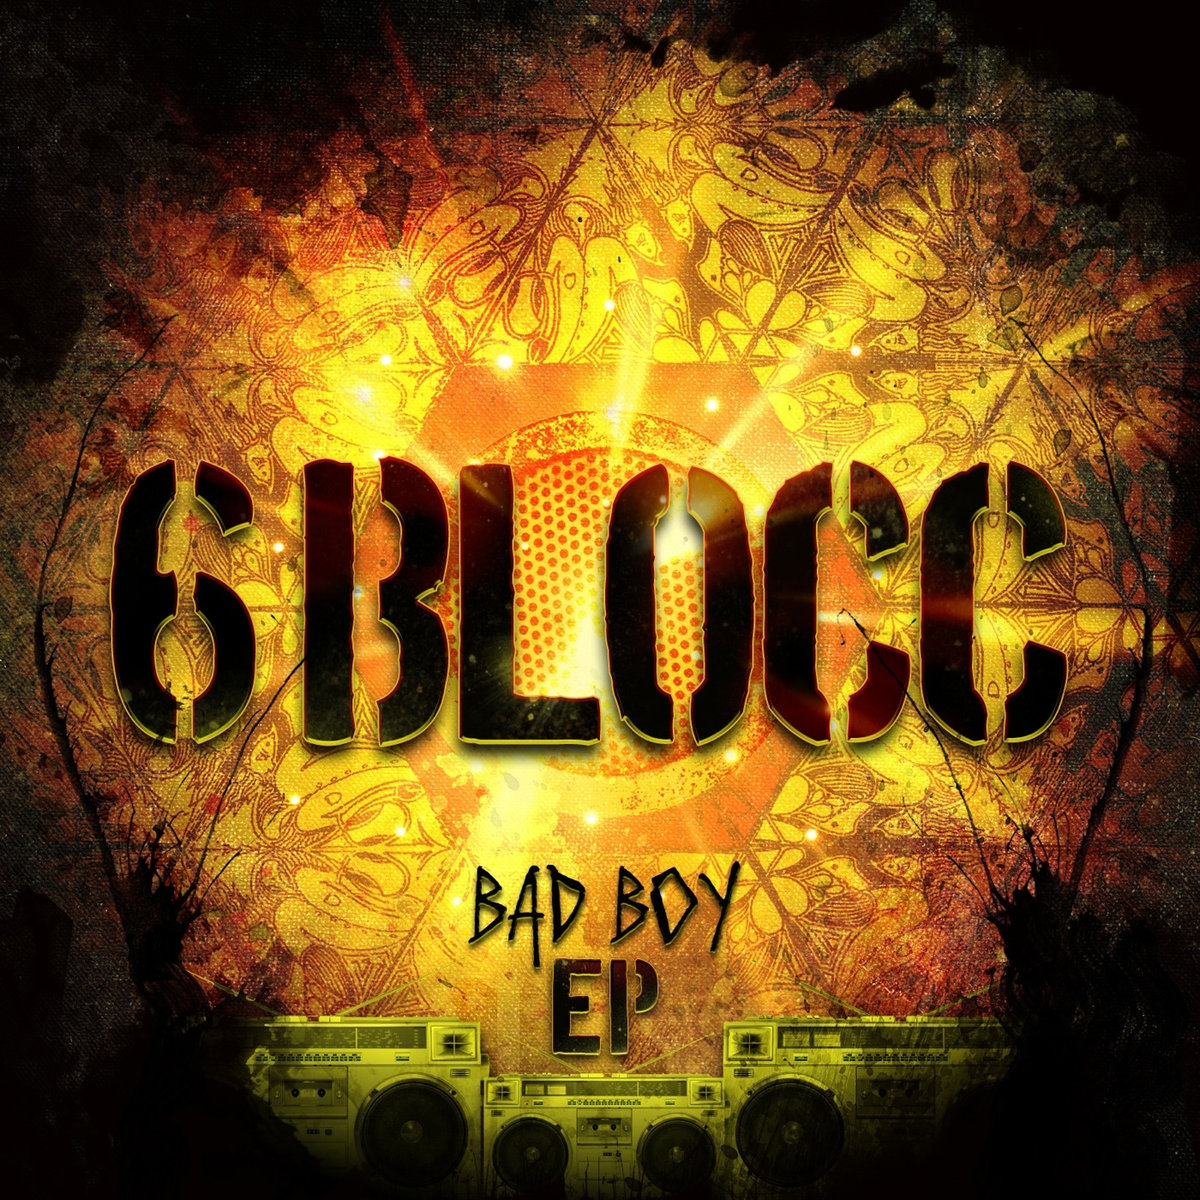 6Blocc - Bad Boy (Skulltrane Remix) @ 'Bad Boy' album (electronic, dubstep)